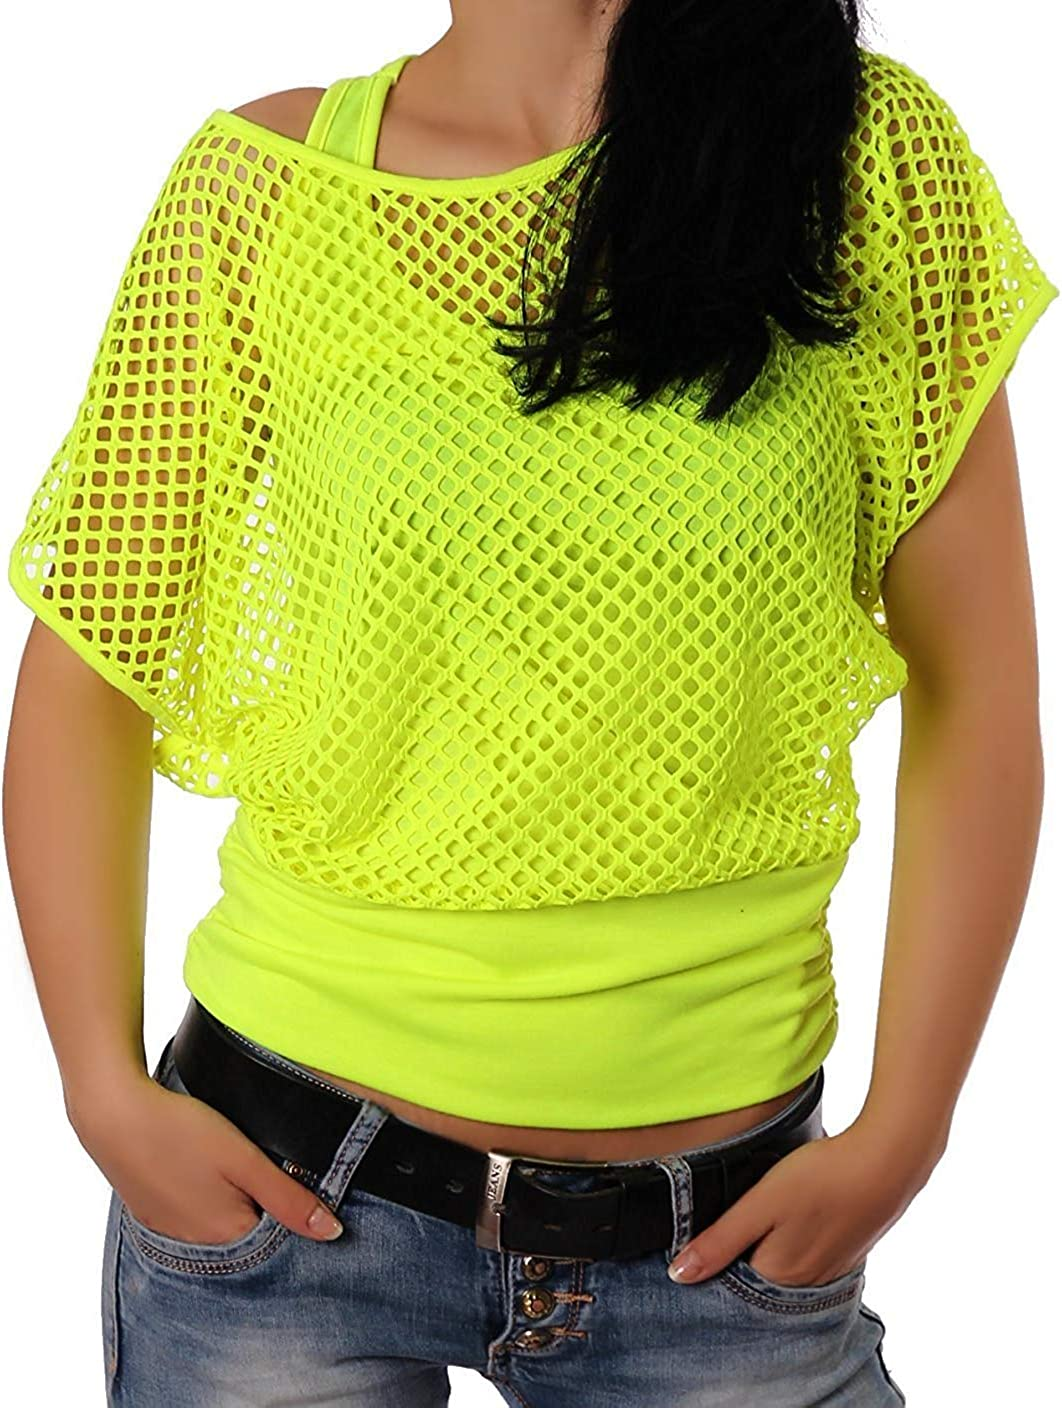 1980s Clothing, Fashion | 80s Style Clothes Smile Fish Women Casual Sexy 80s Costumes Fishnet Neon Off Shoulder T-Shirt $21.99 AT vintagedancer.com